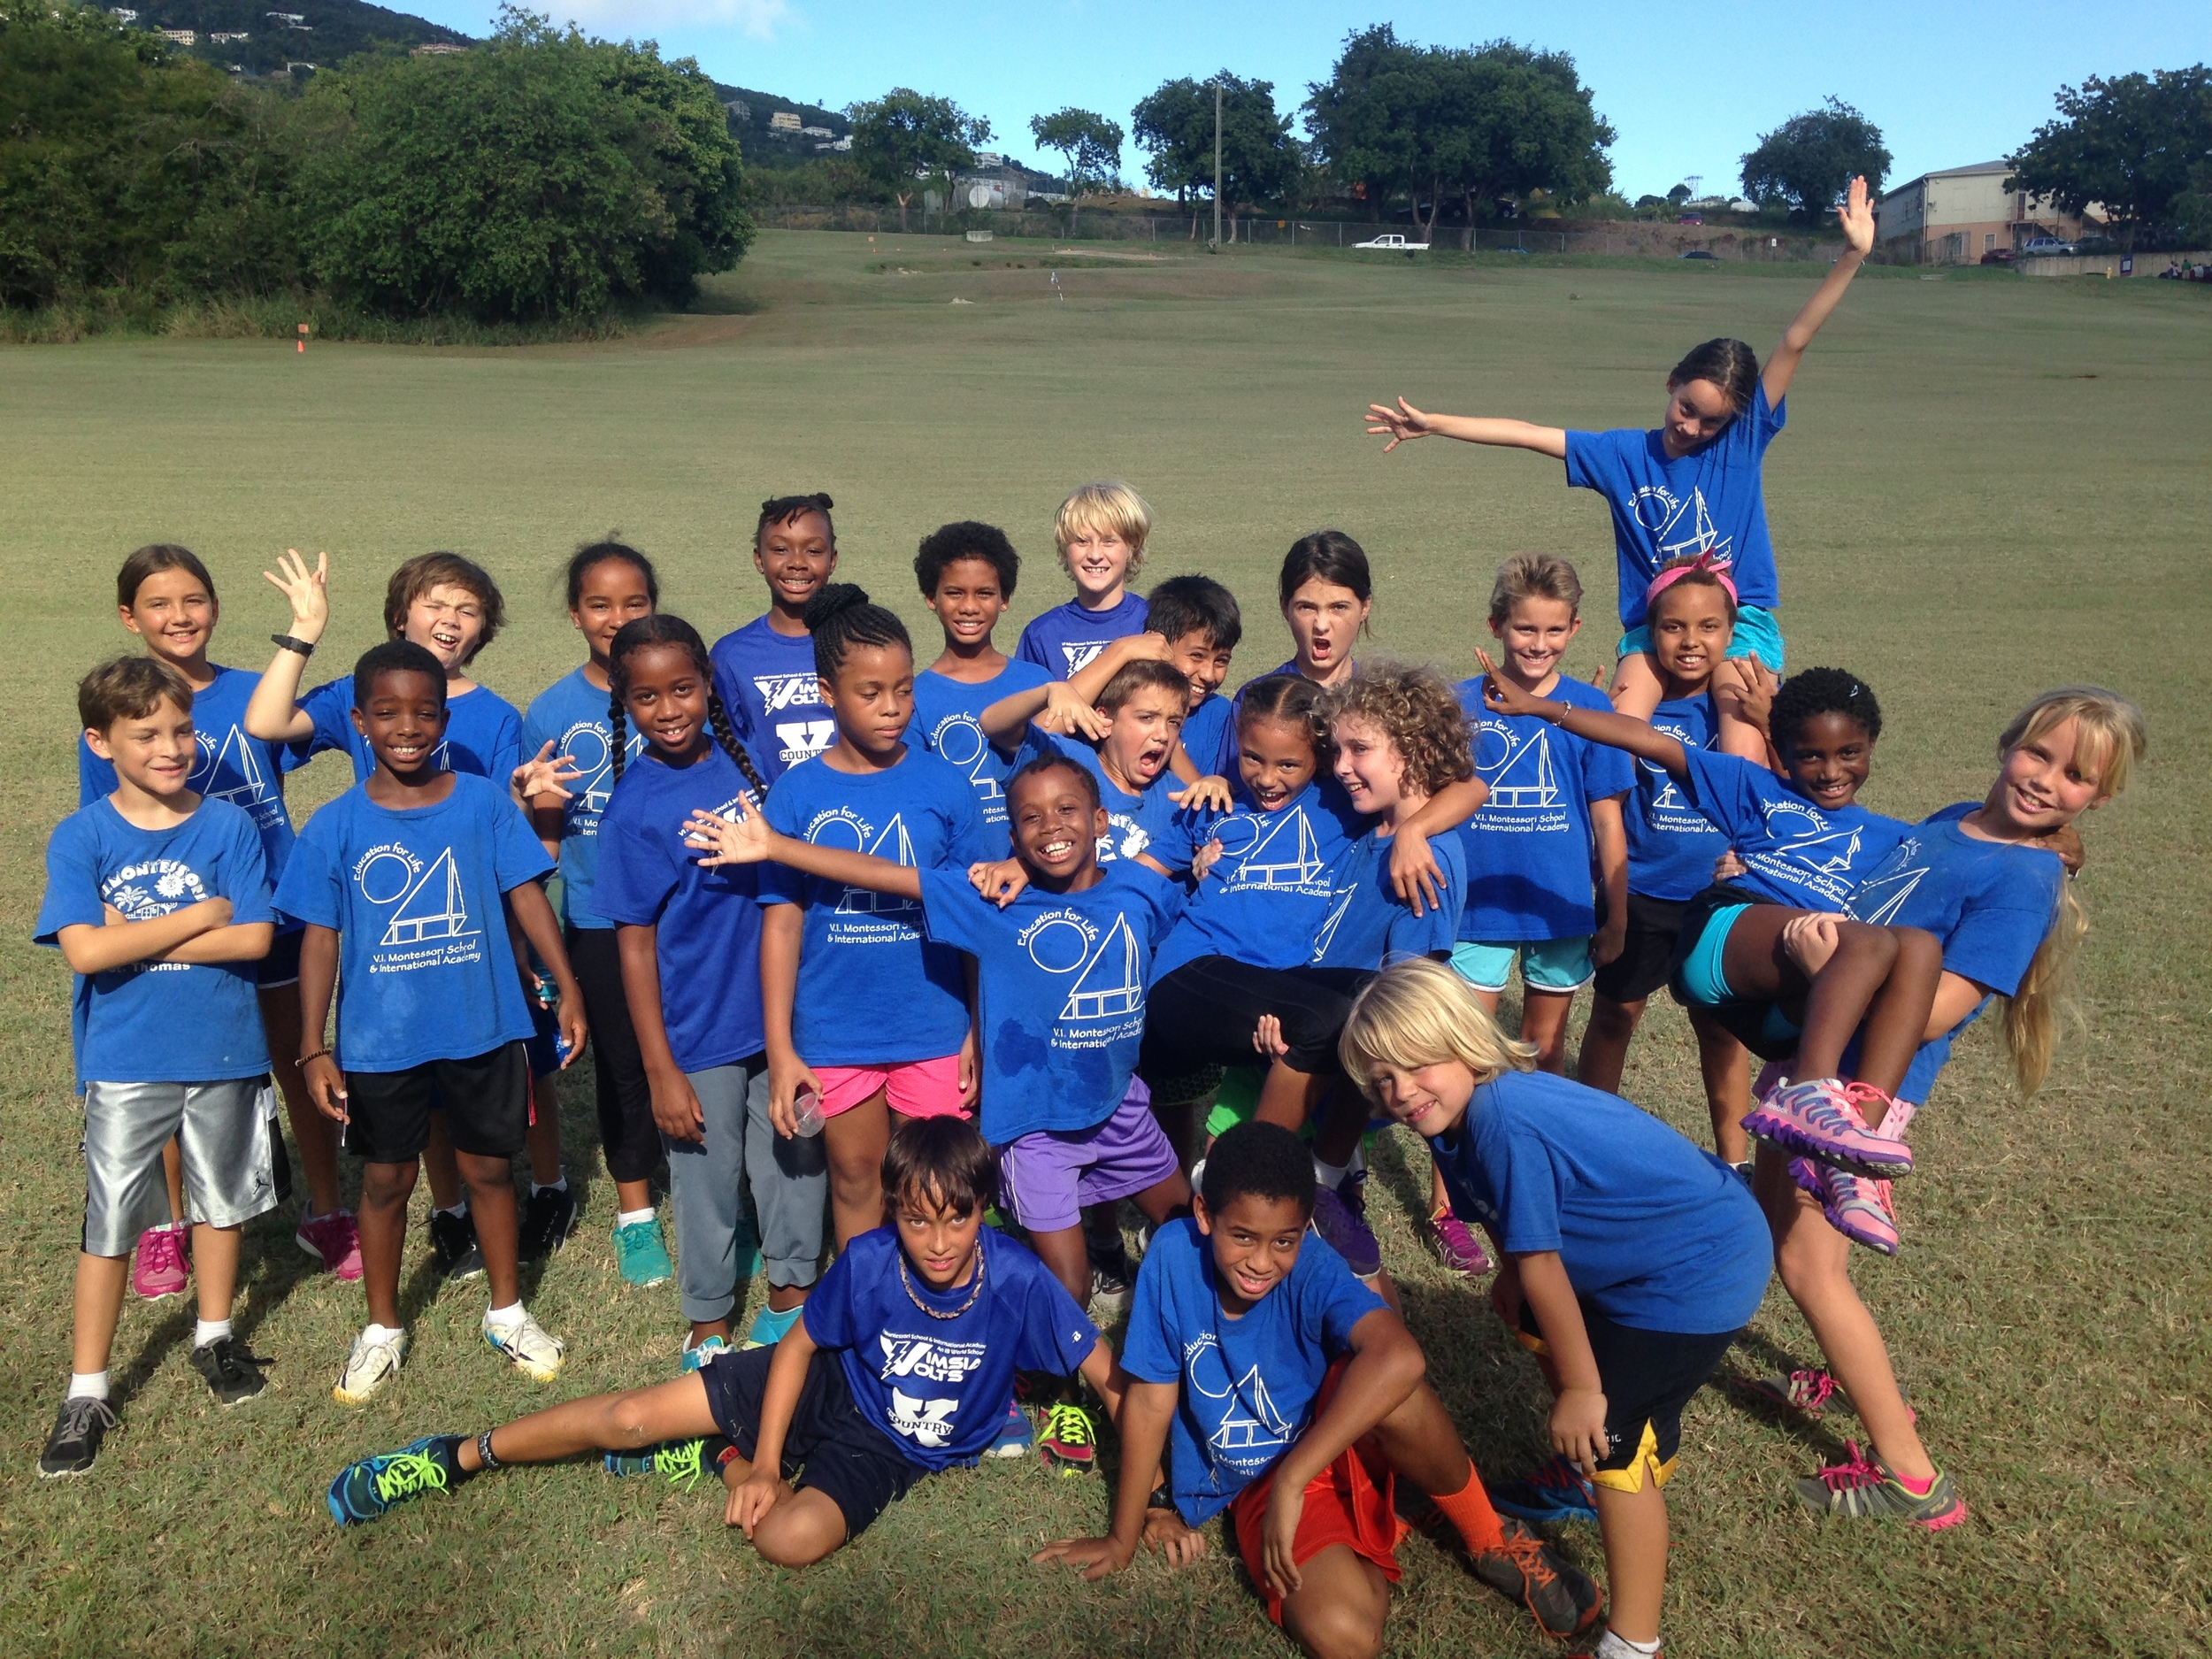 Elementary Cross Country Teams